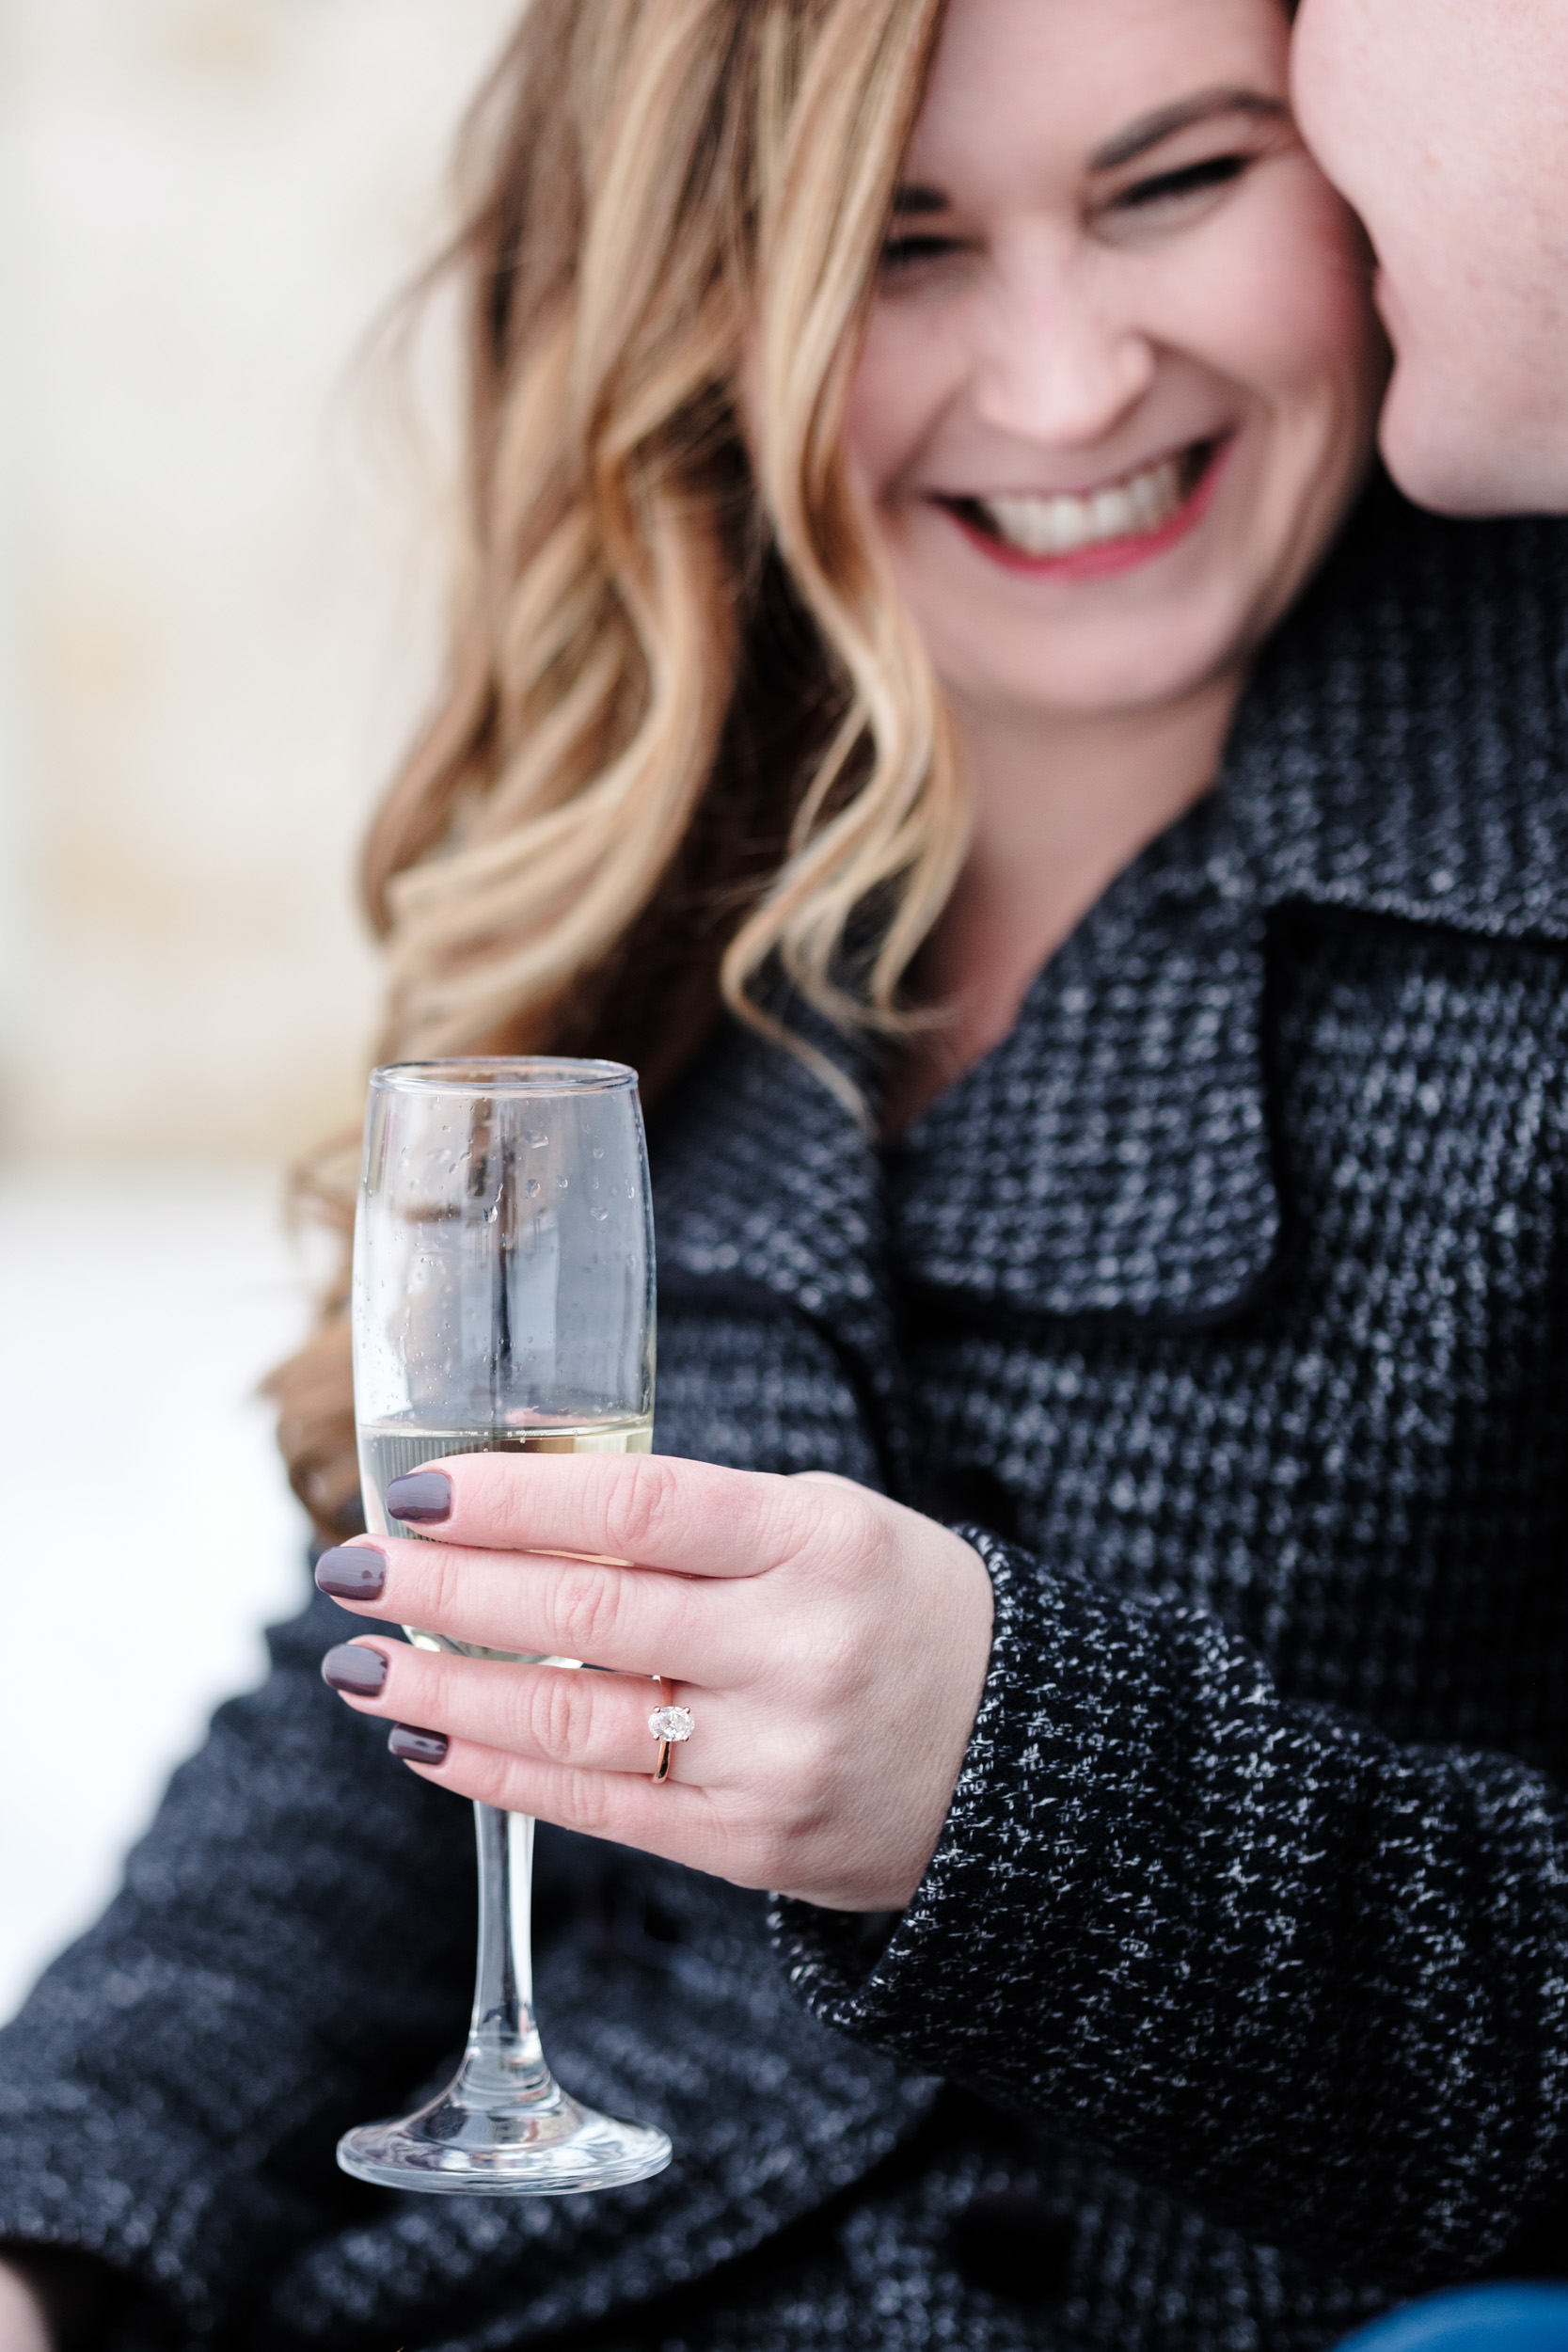 Engagement photo girl holding champagne glass with rose gold diamond engagement ring and nordstrom p coat at orchard ridge farms the pavilion